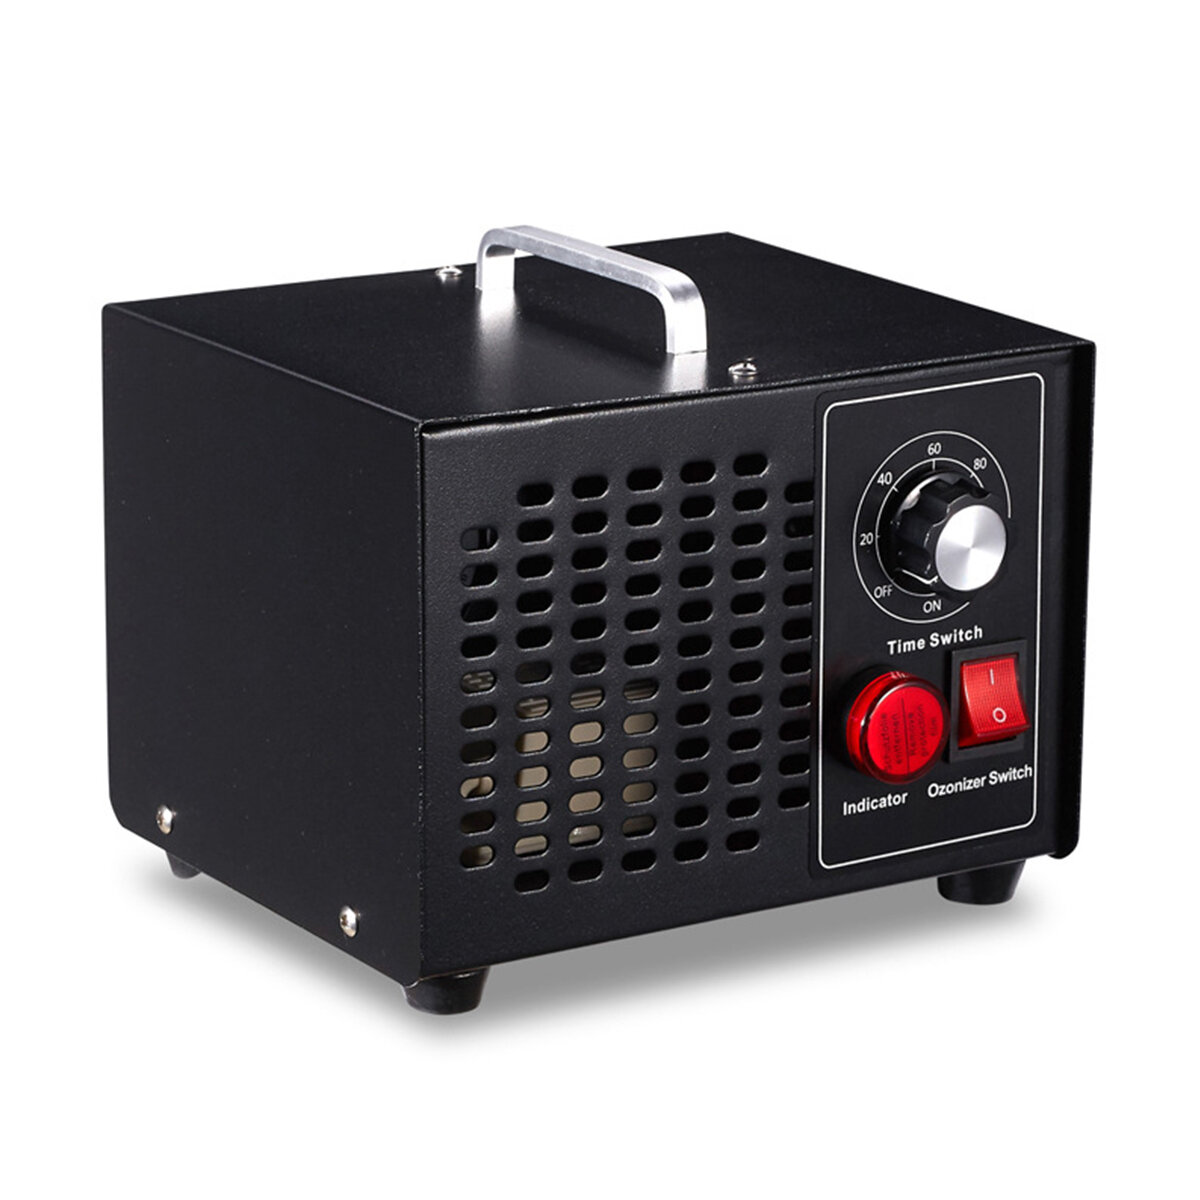 AC110V / 220V 3.5G Ozone Generator Portable Home Ozone Air Disinfector Air Purifier with Timer